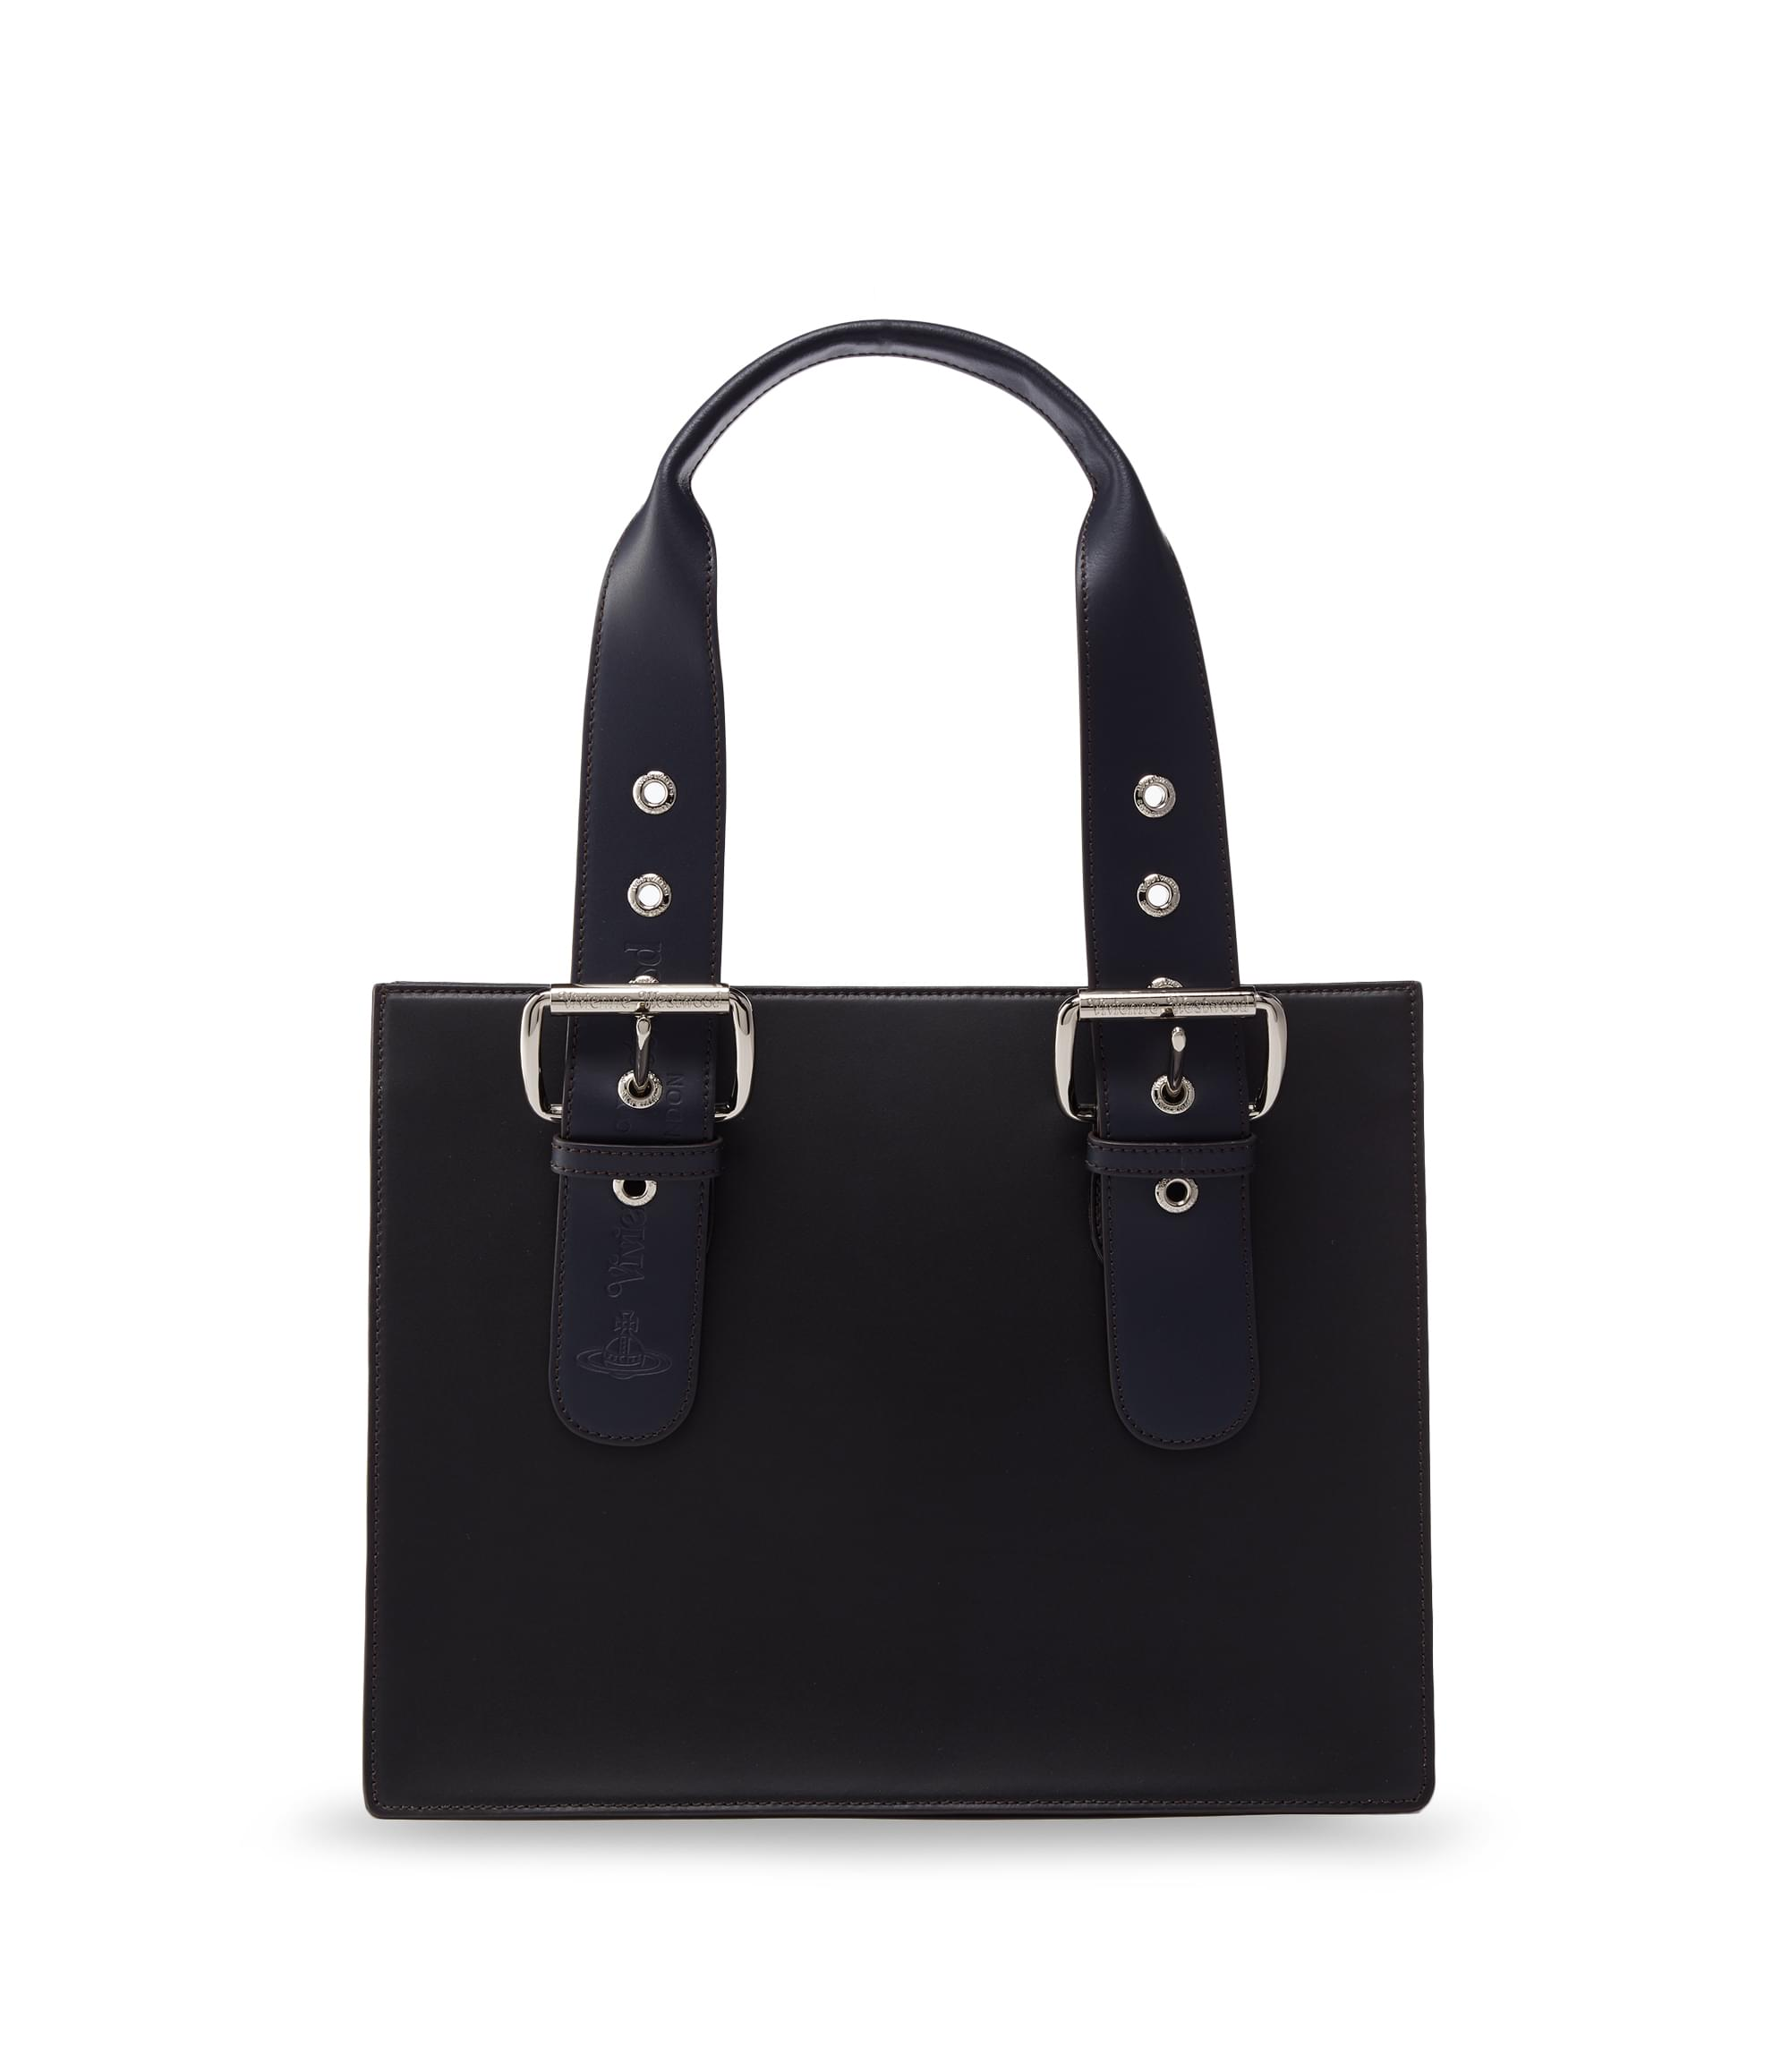 Vivienne Westwood Black Alex Bag 131058